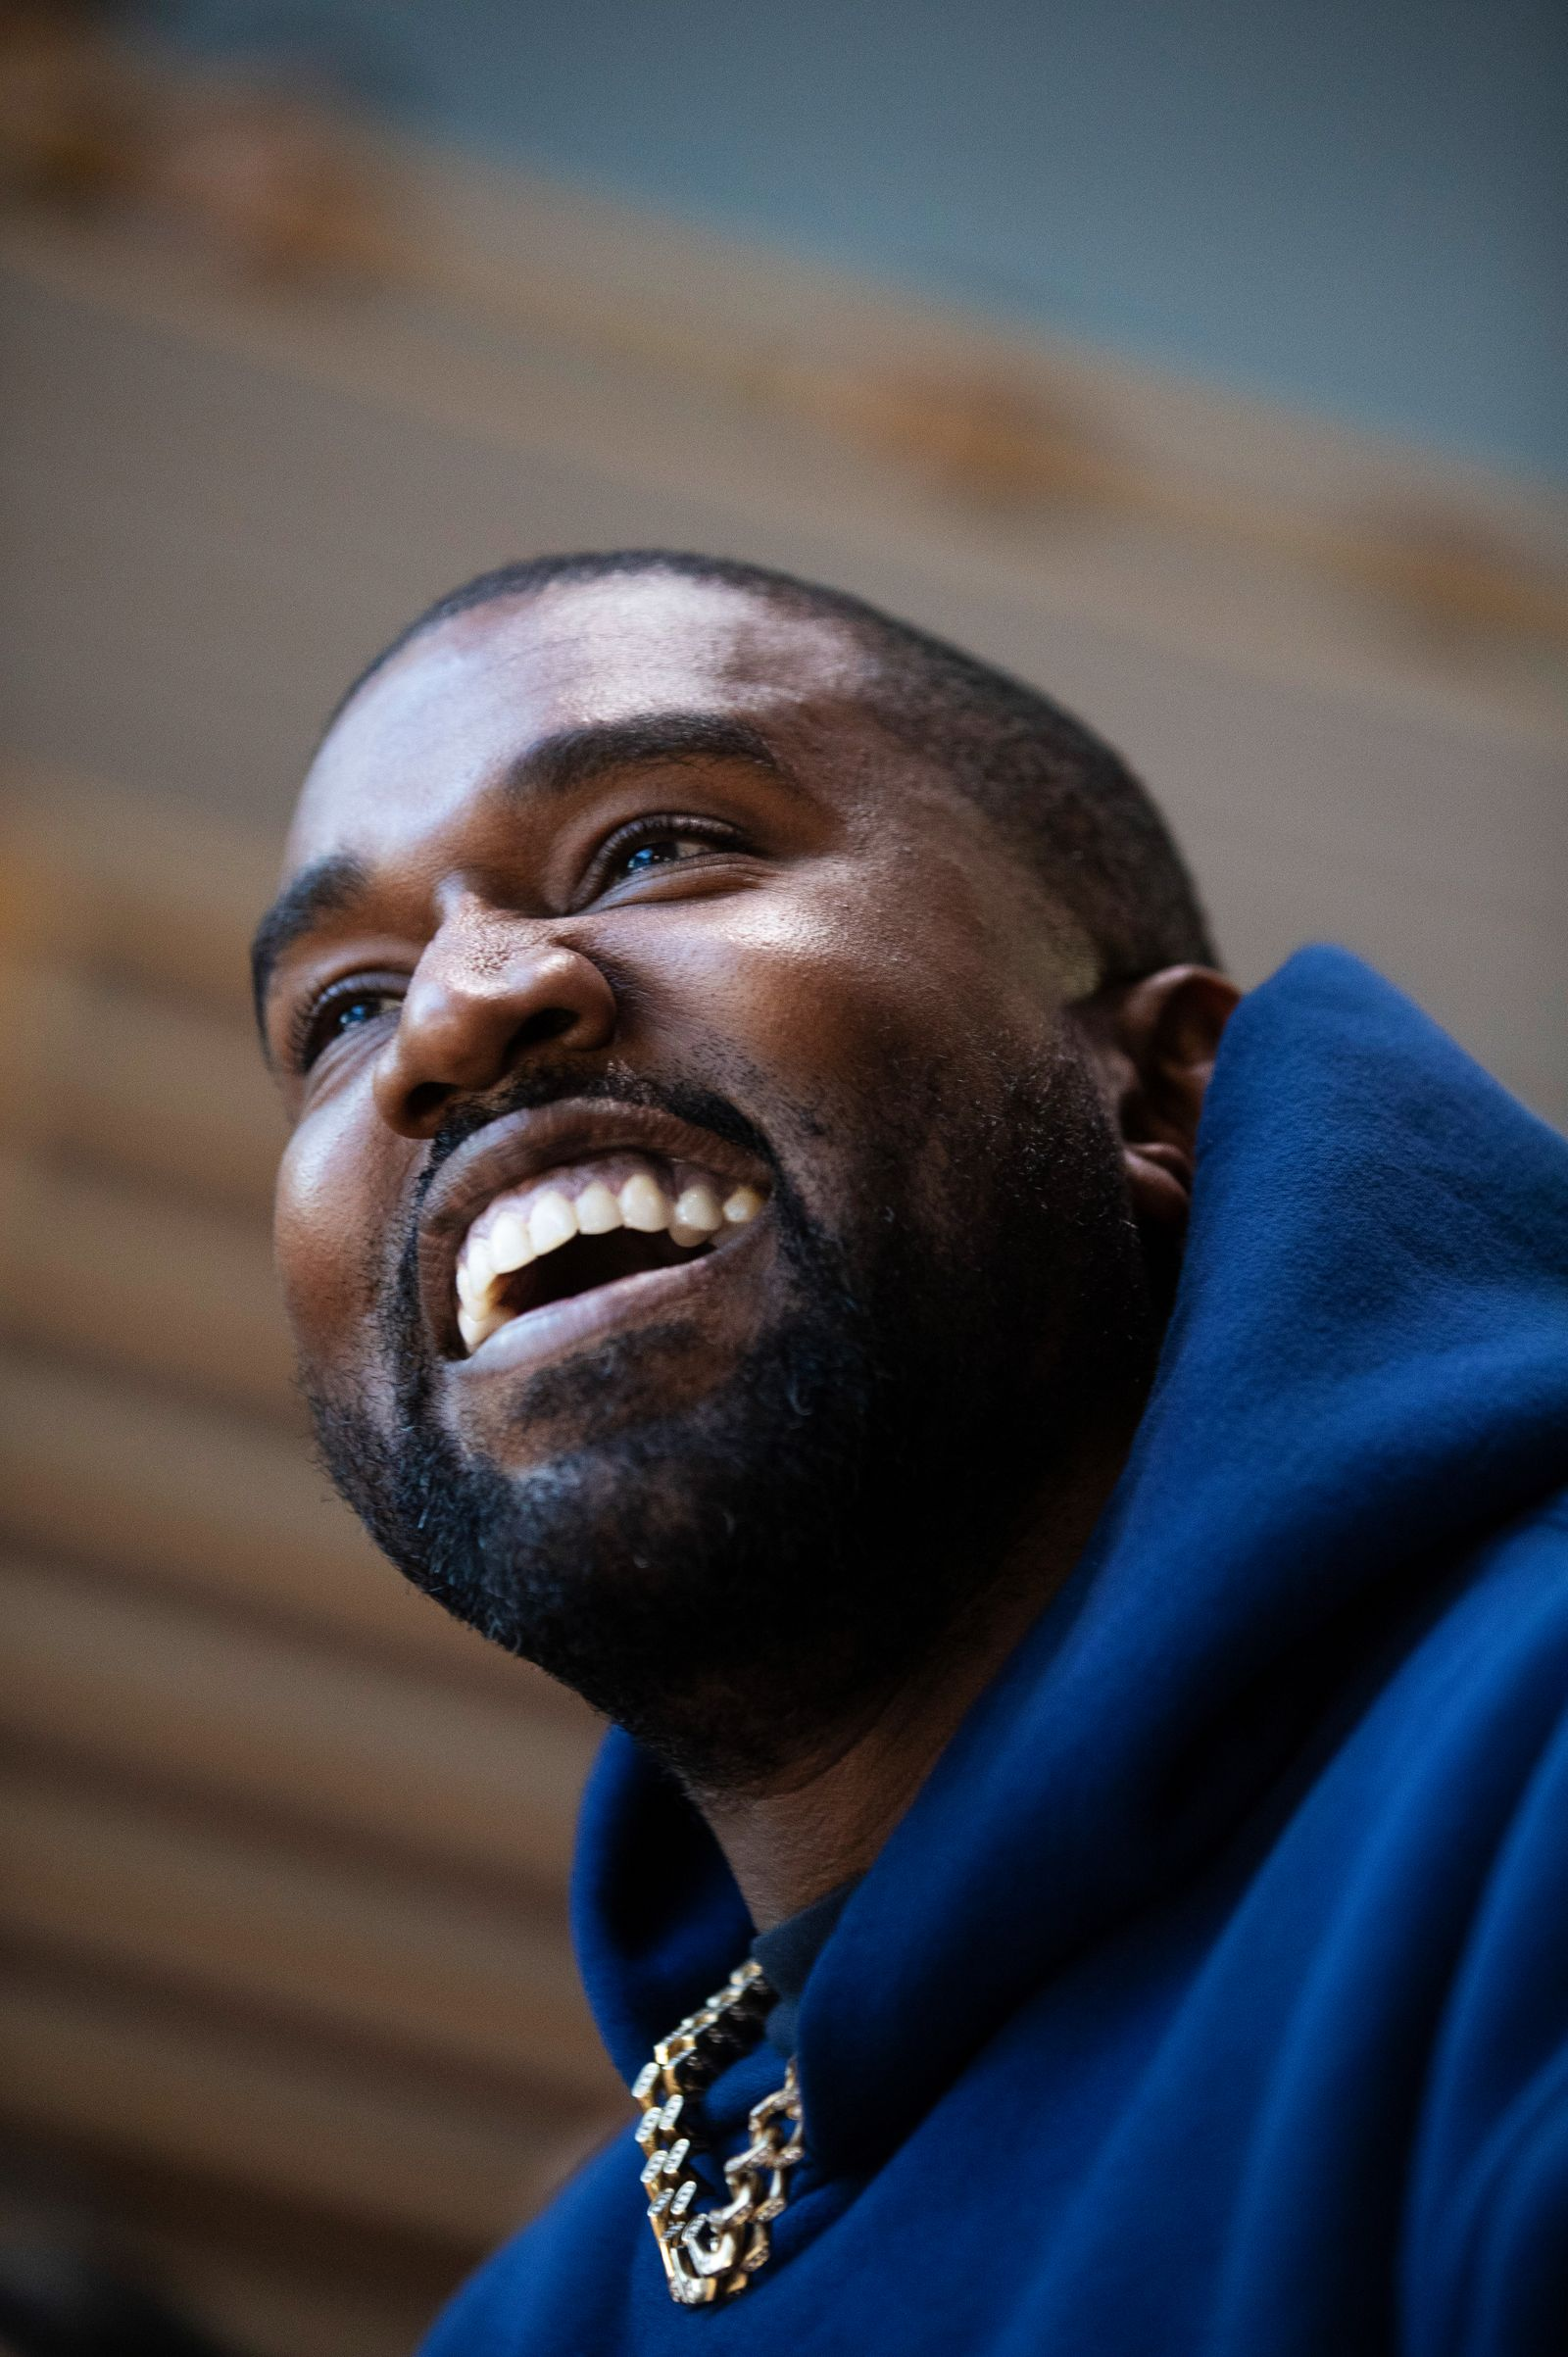 Kanye West at the annual New York Times DealBook conference in New York on Nov. 6, 2019. (Calla Kessler/The New York Times)